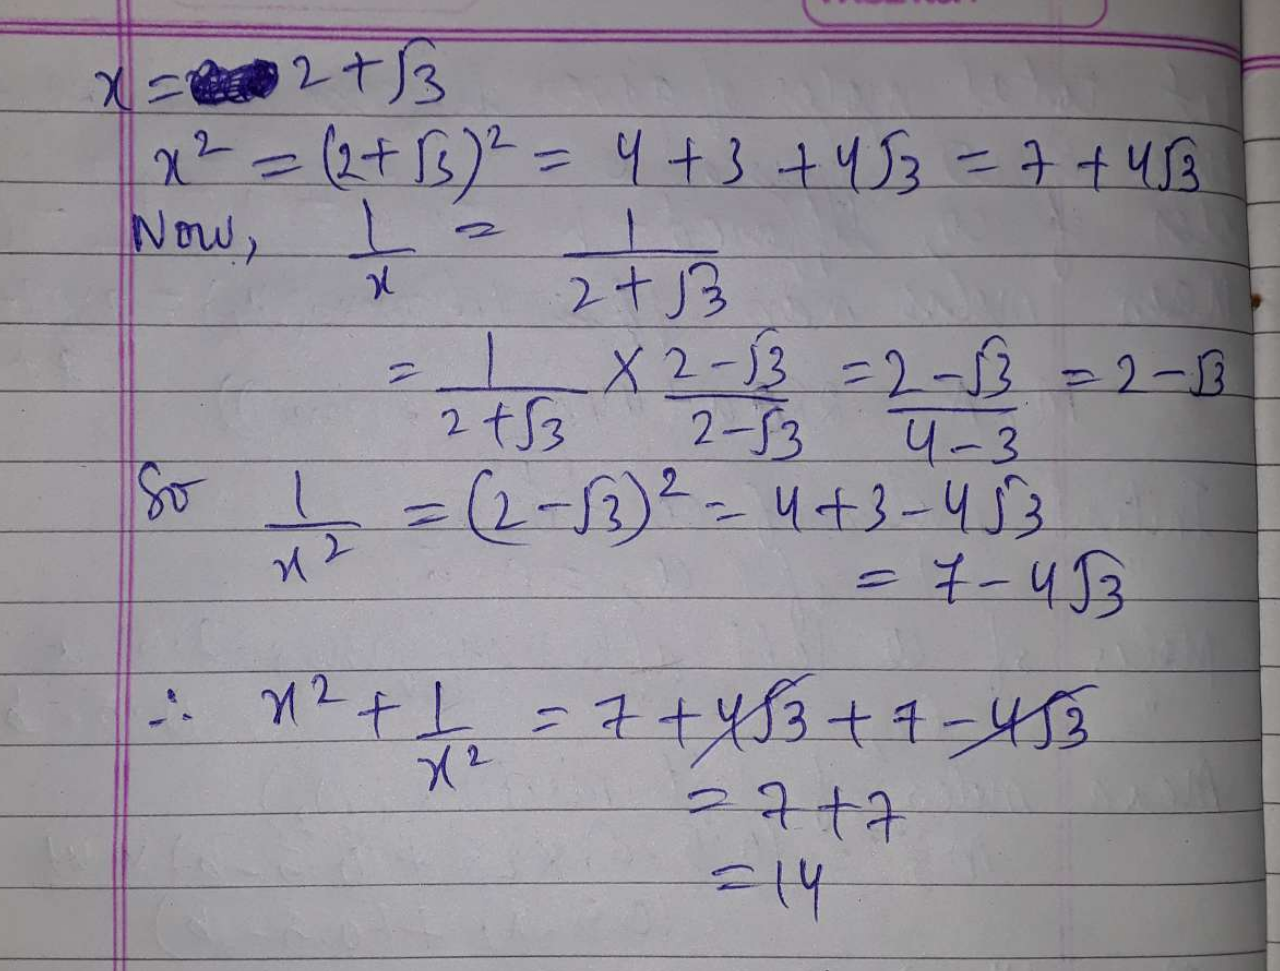 If x = 2 + √3, find the value of x2 + 1x2